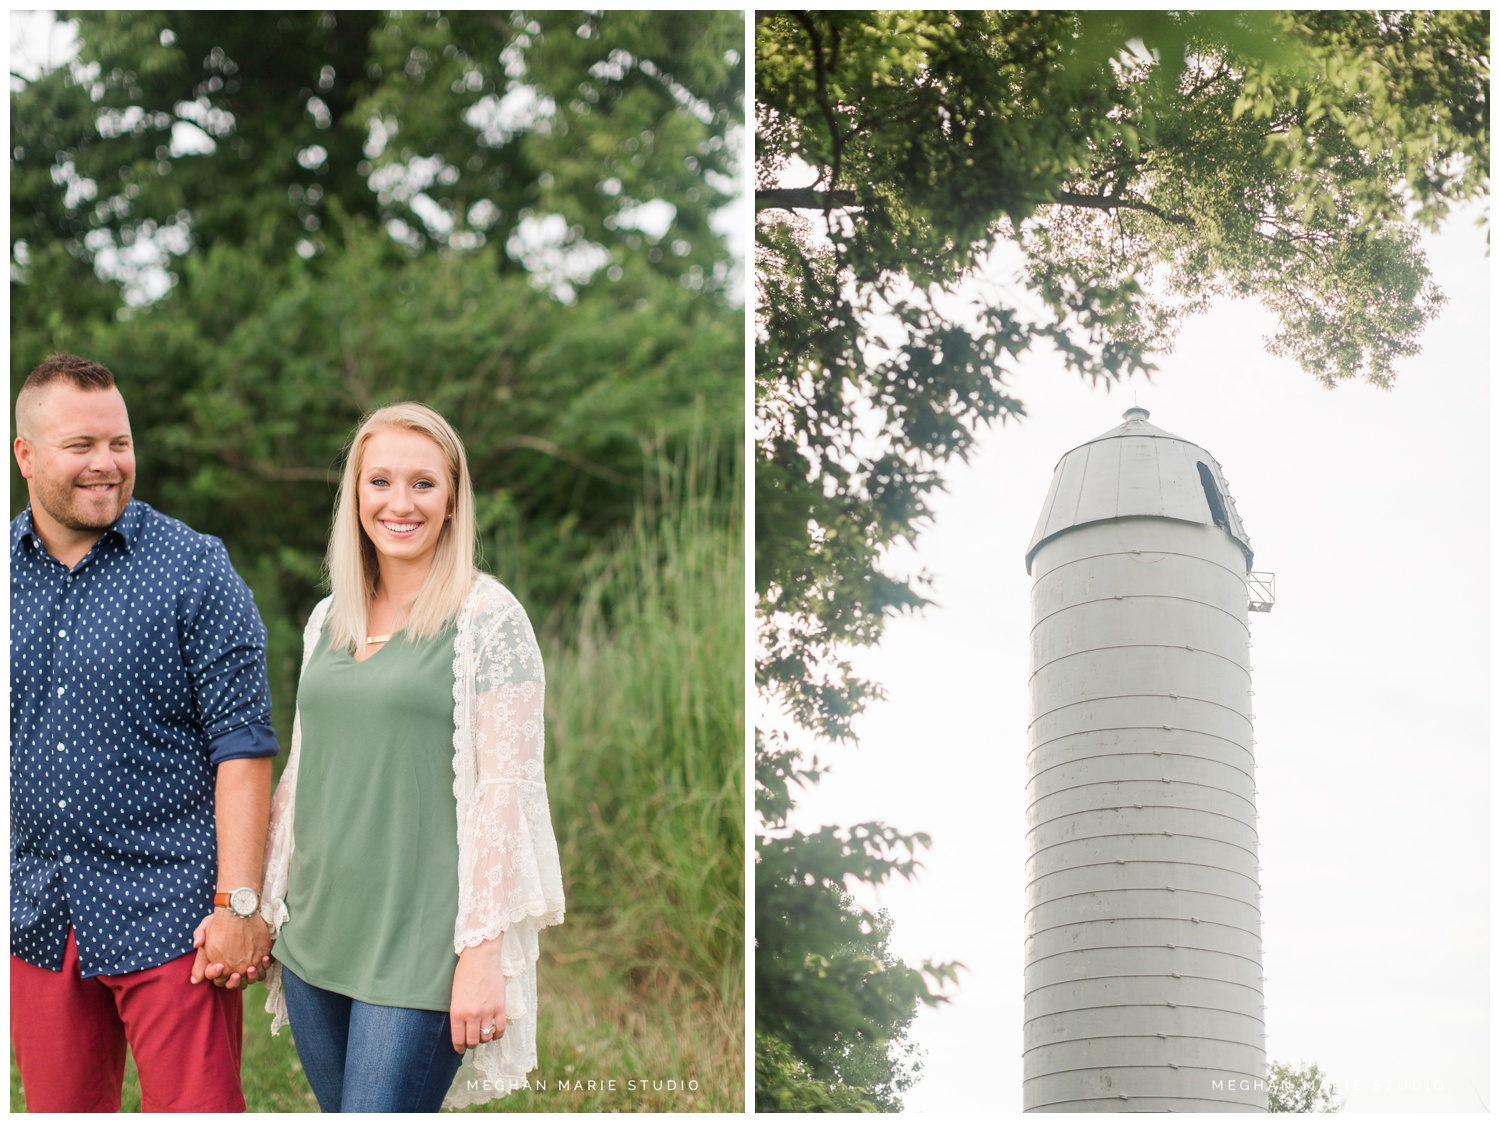 meghan marie studio ohio dayton troy photographer wedding photography engagement alex kaila family honeycreek preserve champagne downtown courthouse urban rural earth toned nature woods barn country city stone fountain elegant_0460.jpg